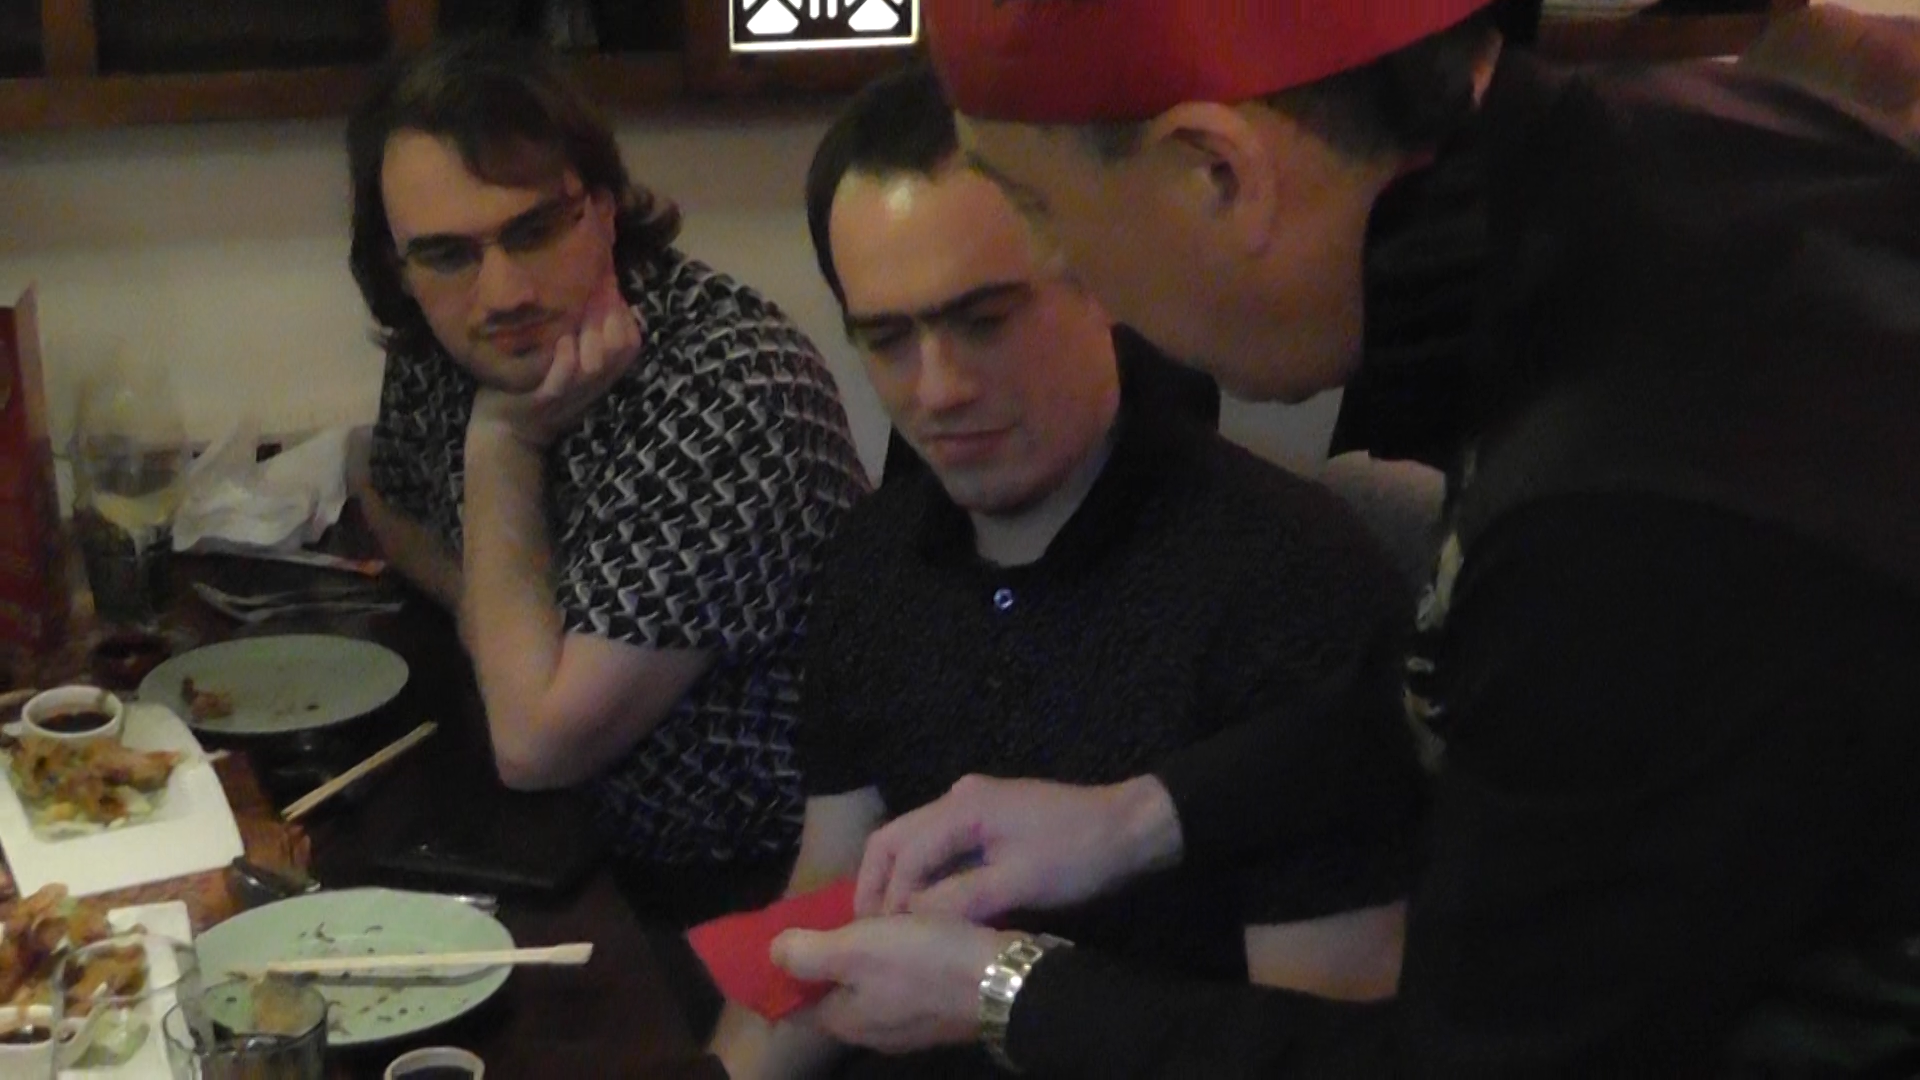 Table in restaurant with group of young people with disappearing coin trick